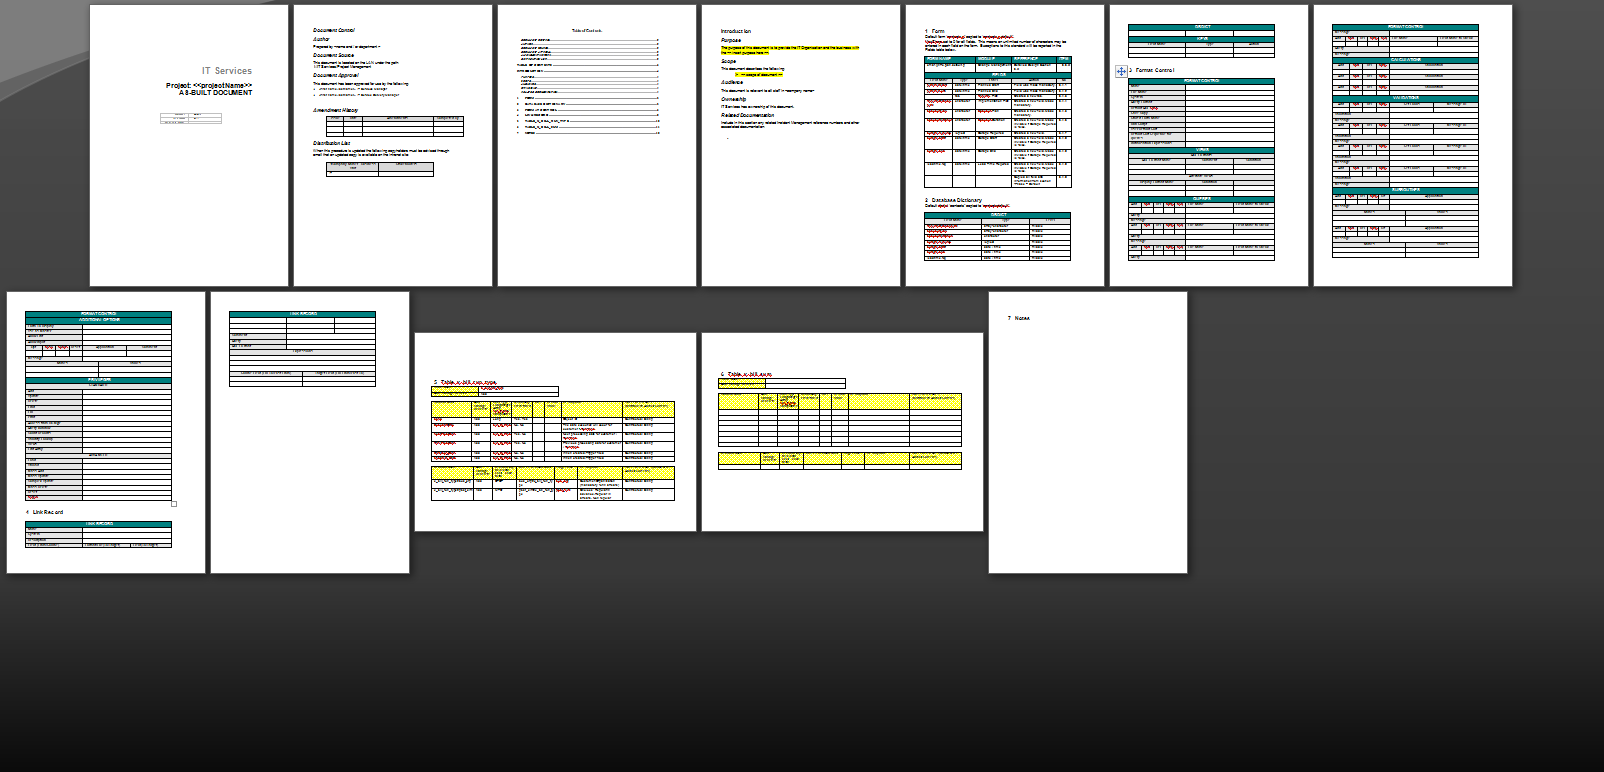 the-project-management-toolkit-image3.png